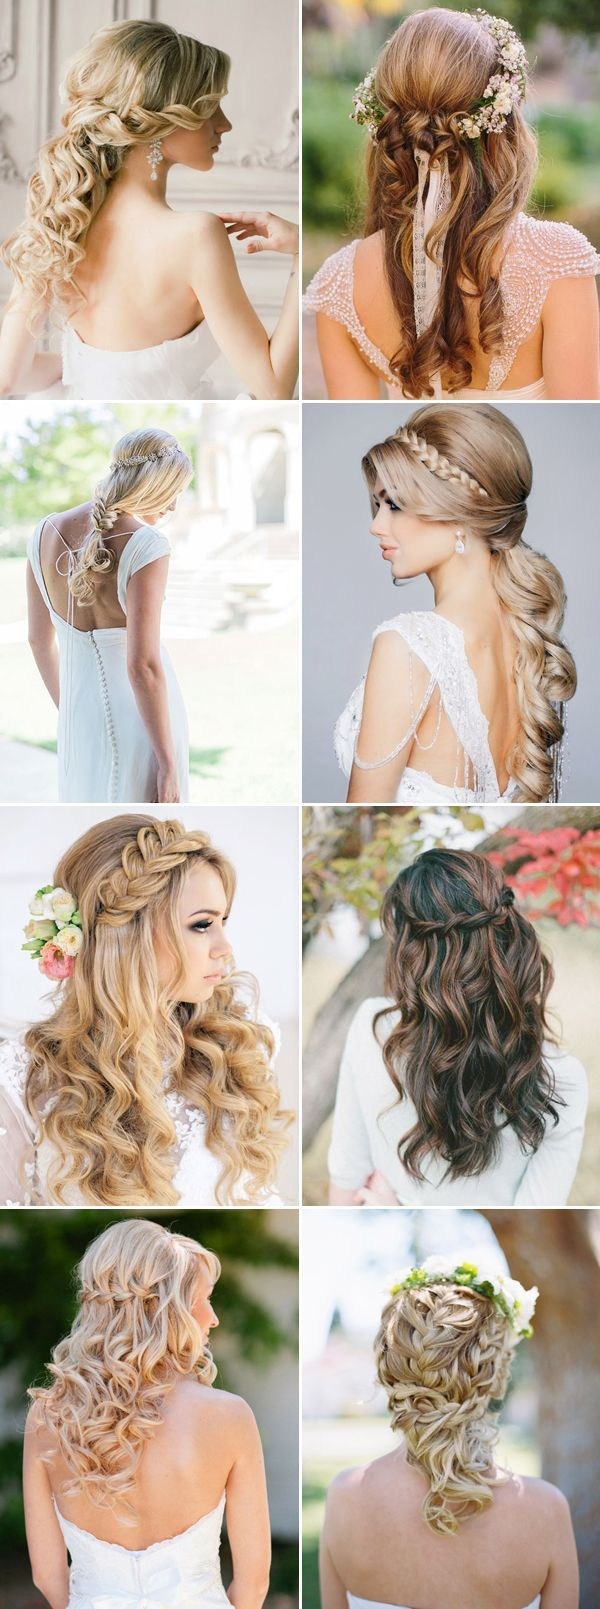 16 Gorgeous Half Up, Half Down Hairstyles for Brides - Partially ...